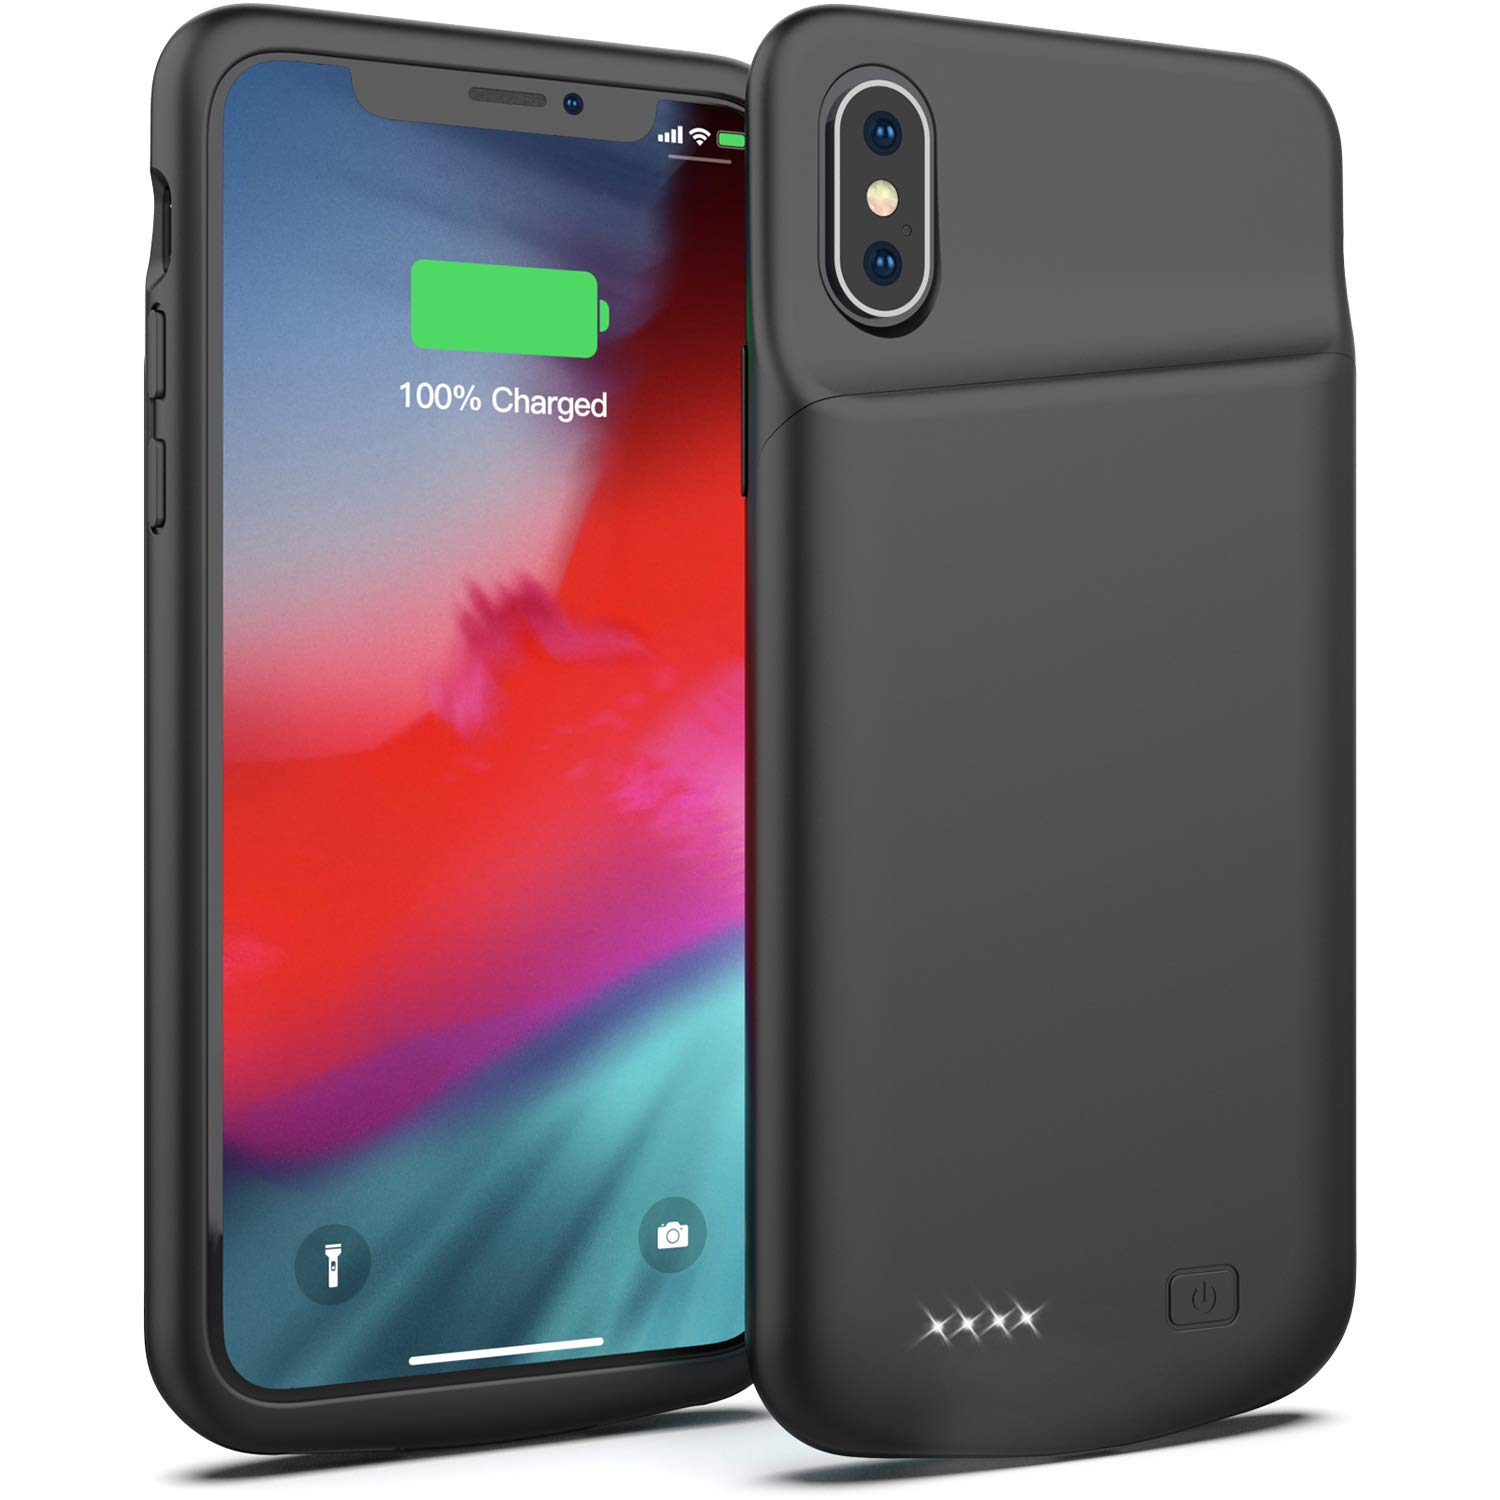 Battery Case for iPhone X/XS, 4000mAh Portable Protective Charging Case Extended Rechargeable Battery Pack Charger Case Compatible with iPhone X/XS / 10 (5.8 inch) (Black)